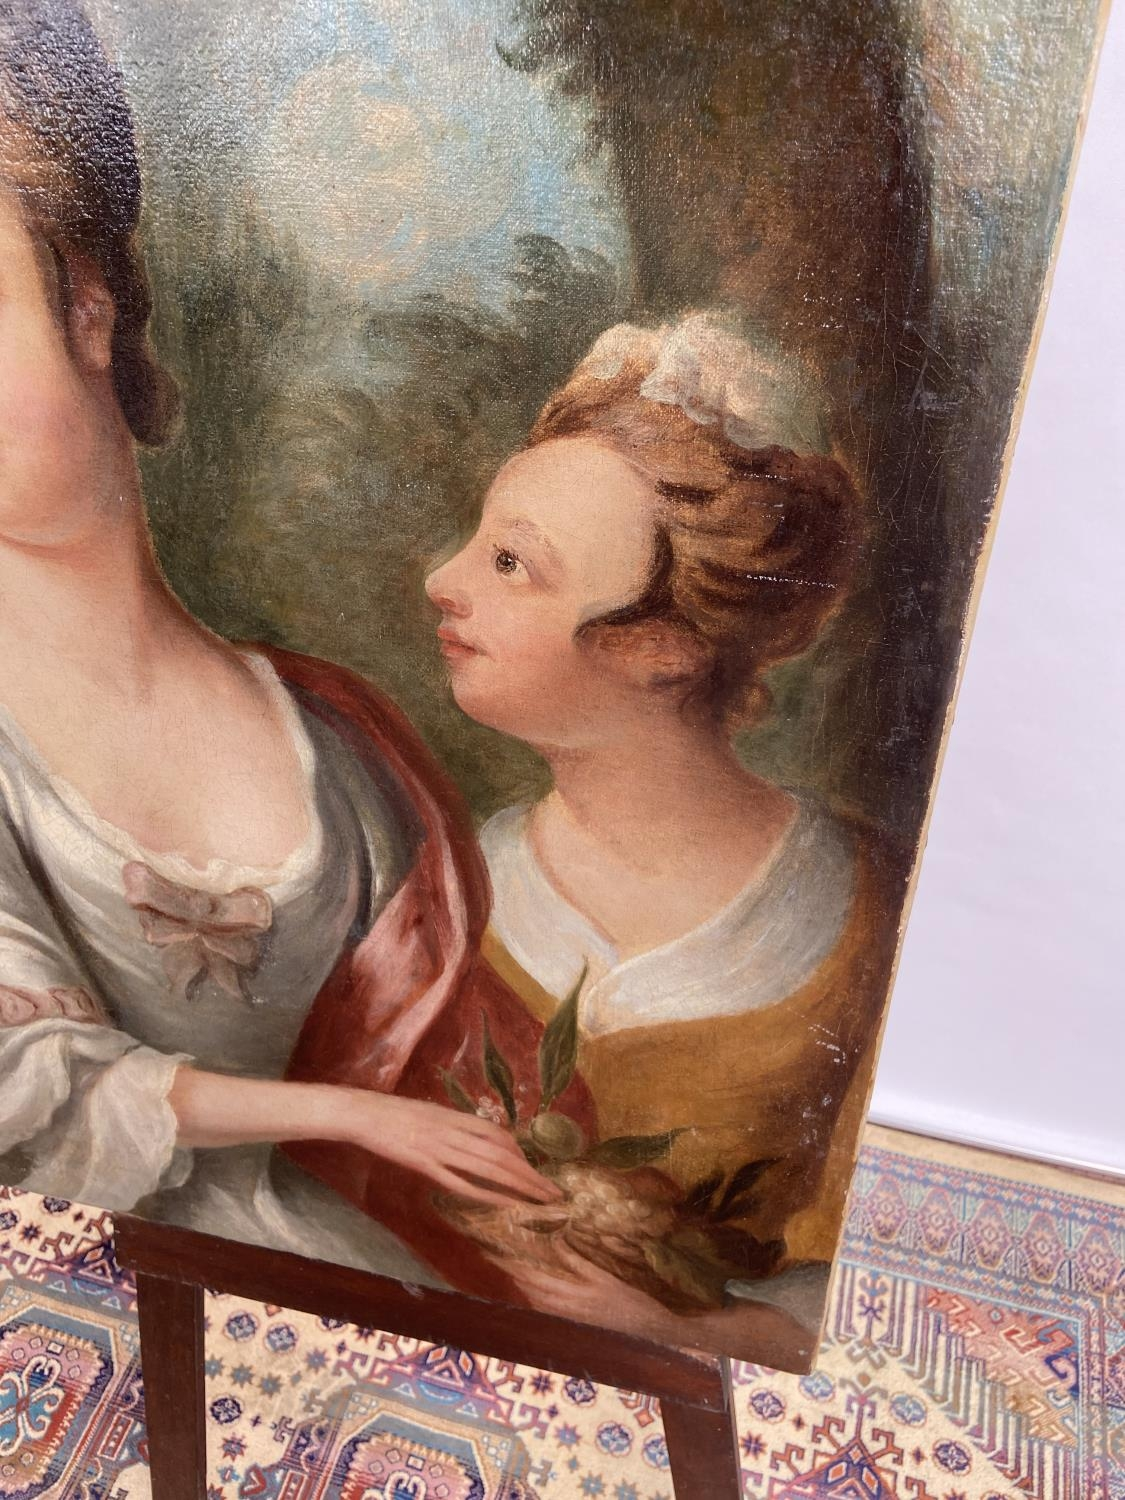 An 18th/19th century oil painting on canvas depicting two ladies posing [74x61cm] - Image 4 of 8